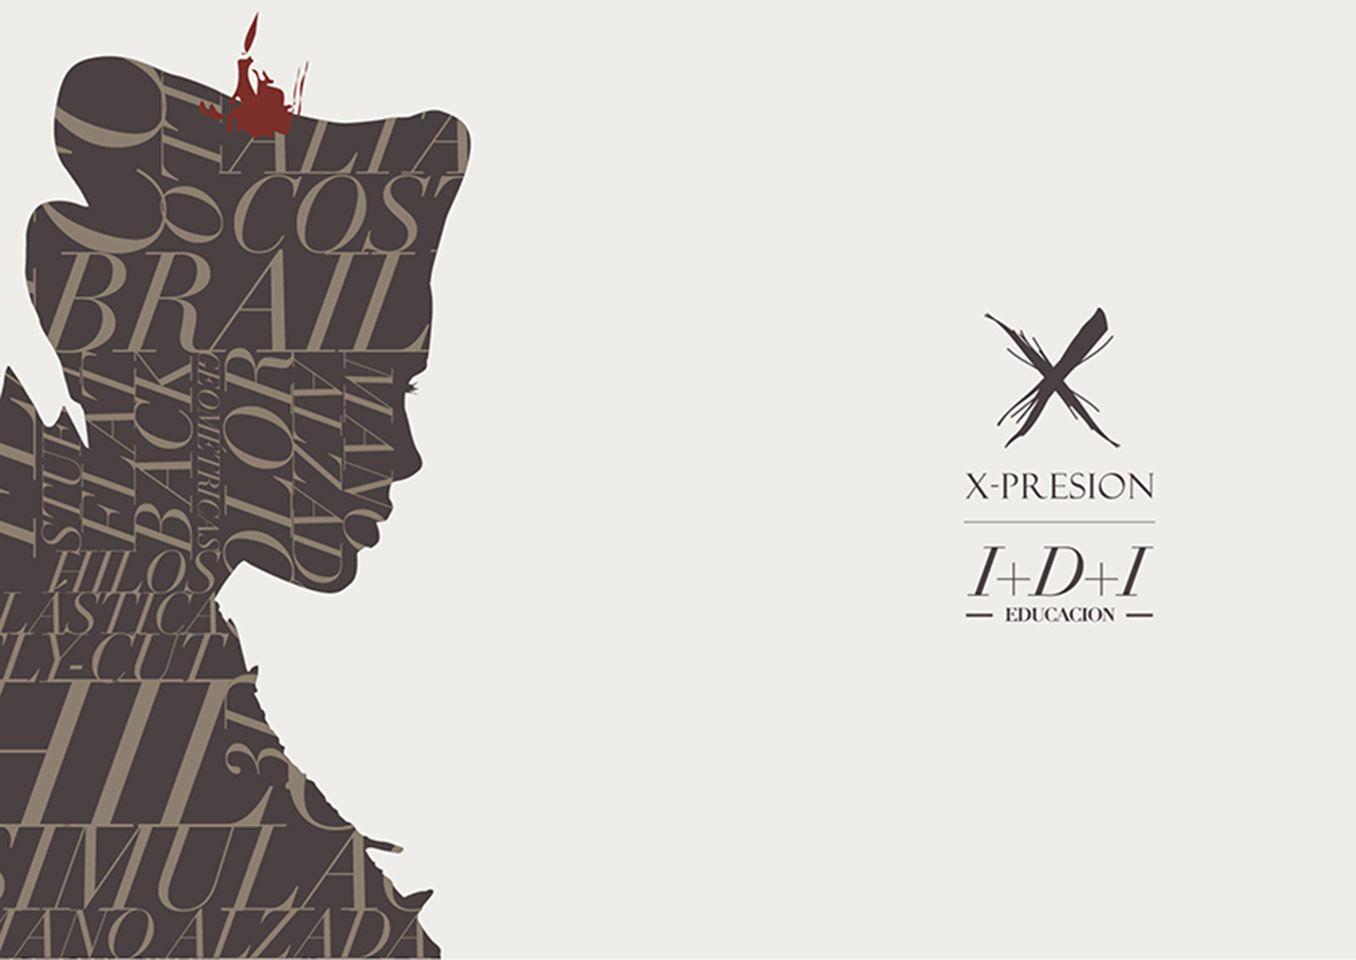 Dosier Educación X-presion — The work of Javier Reta. Art and Design.